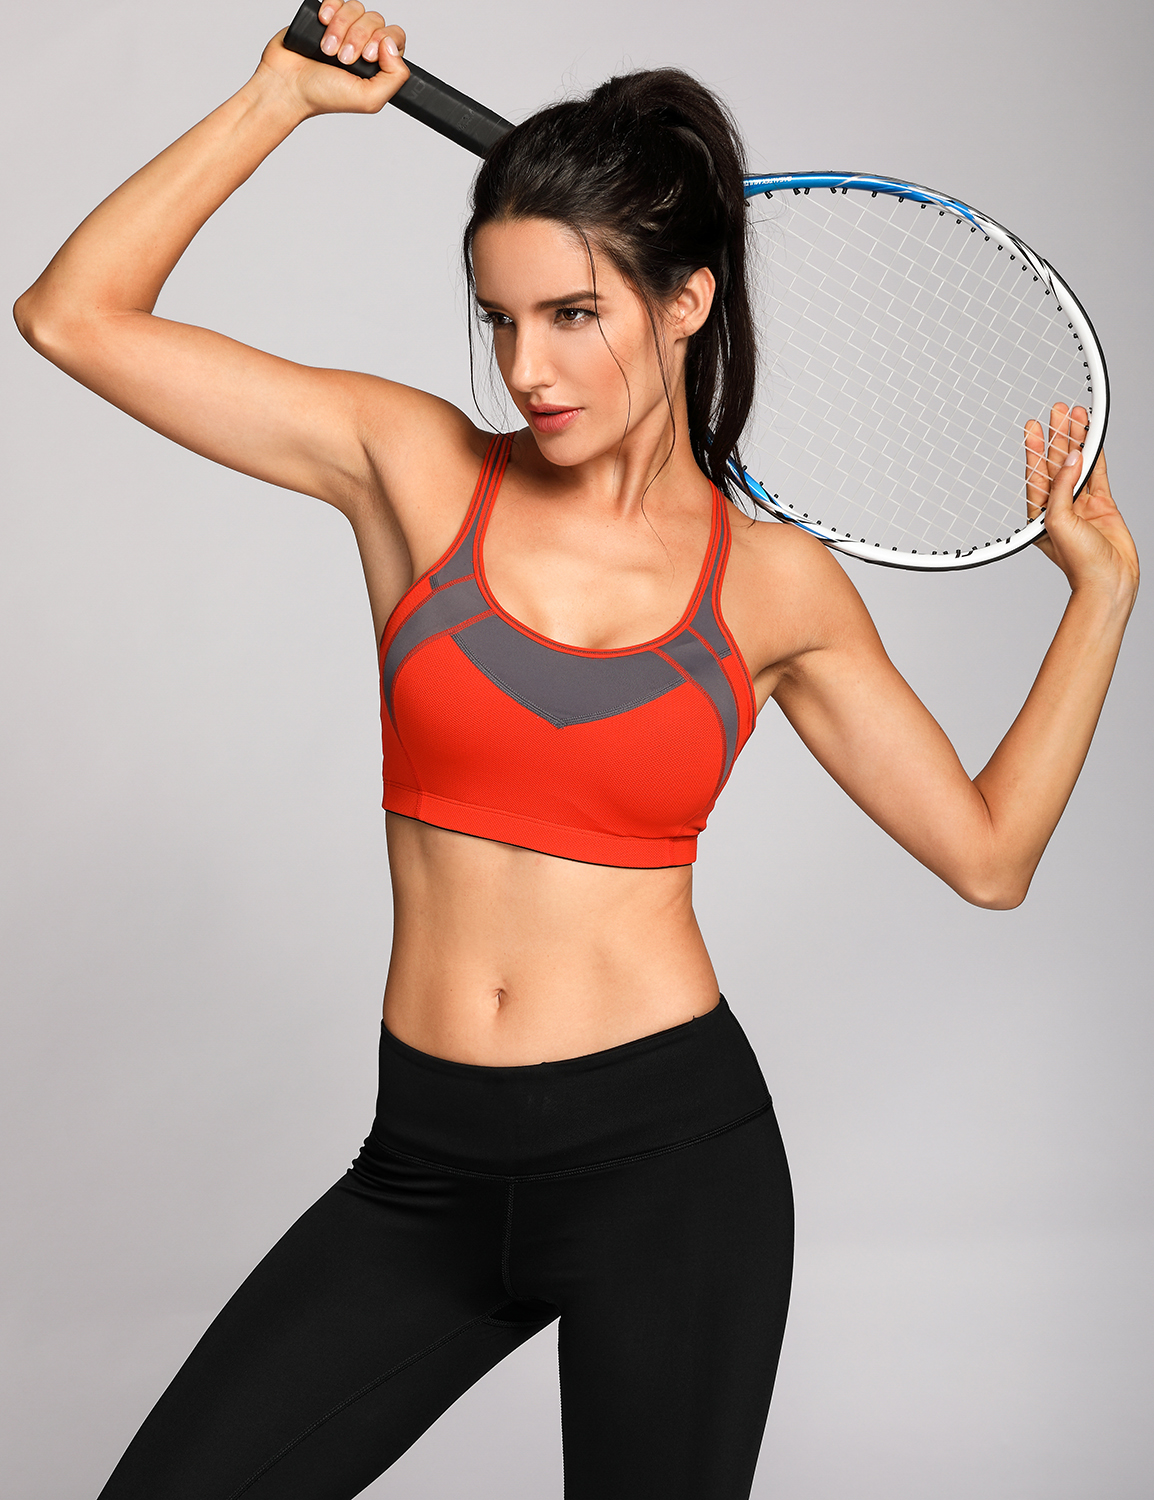 Women-039-s-High-Impact-Gym-Active-Sports-Bra-With-Mesh-Wireless-Padded-Cup-X-back thumbnail 12